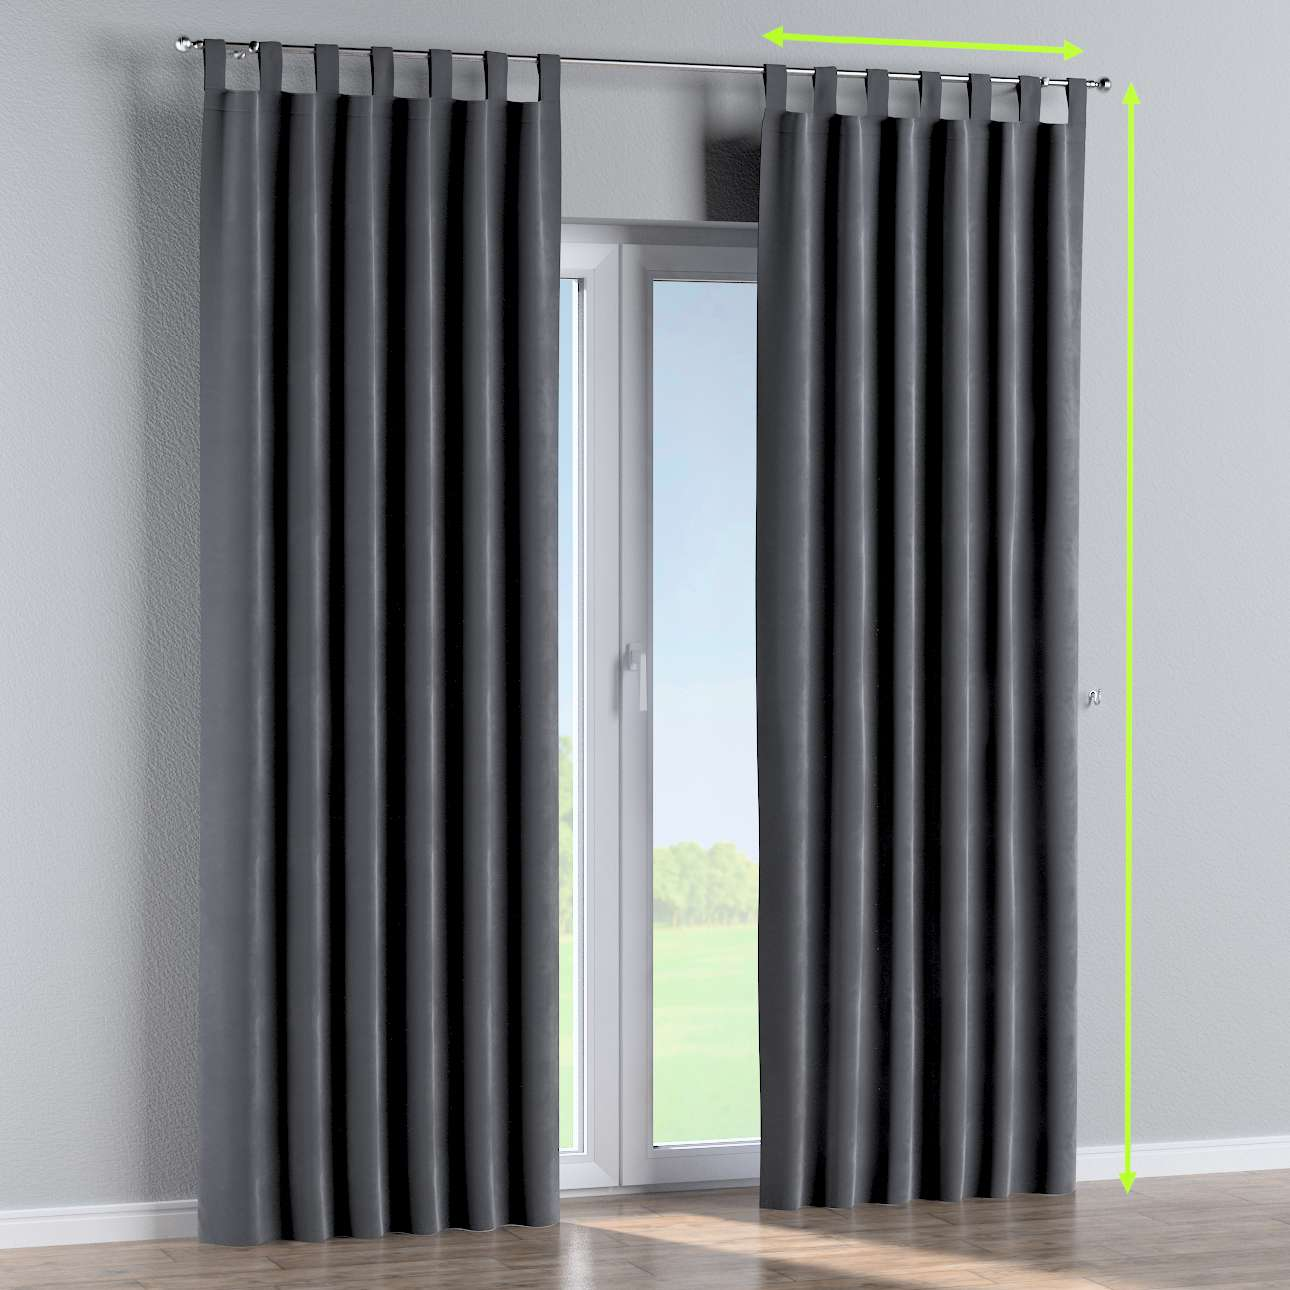 Tab top curtains in collection Velvet, fabric: 704-12